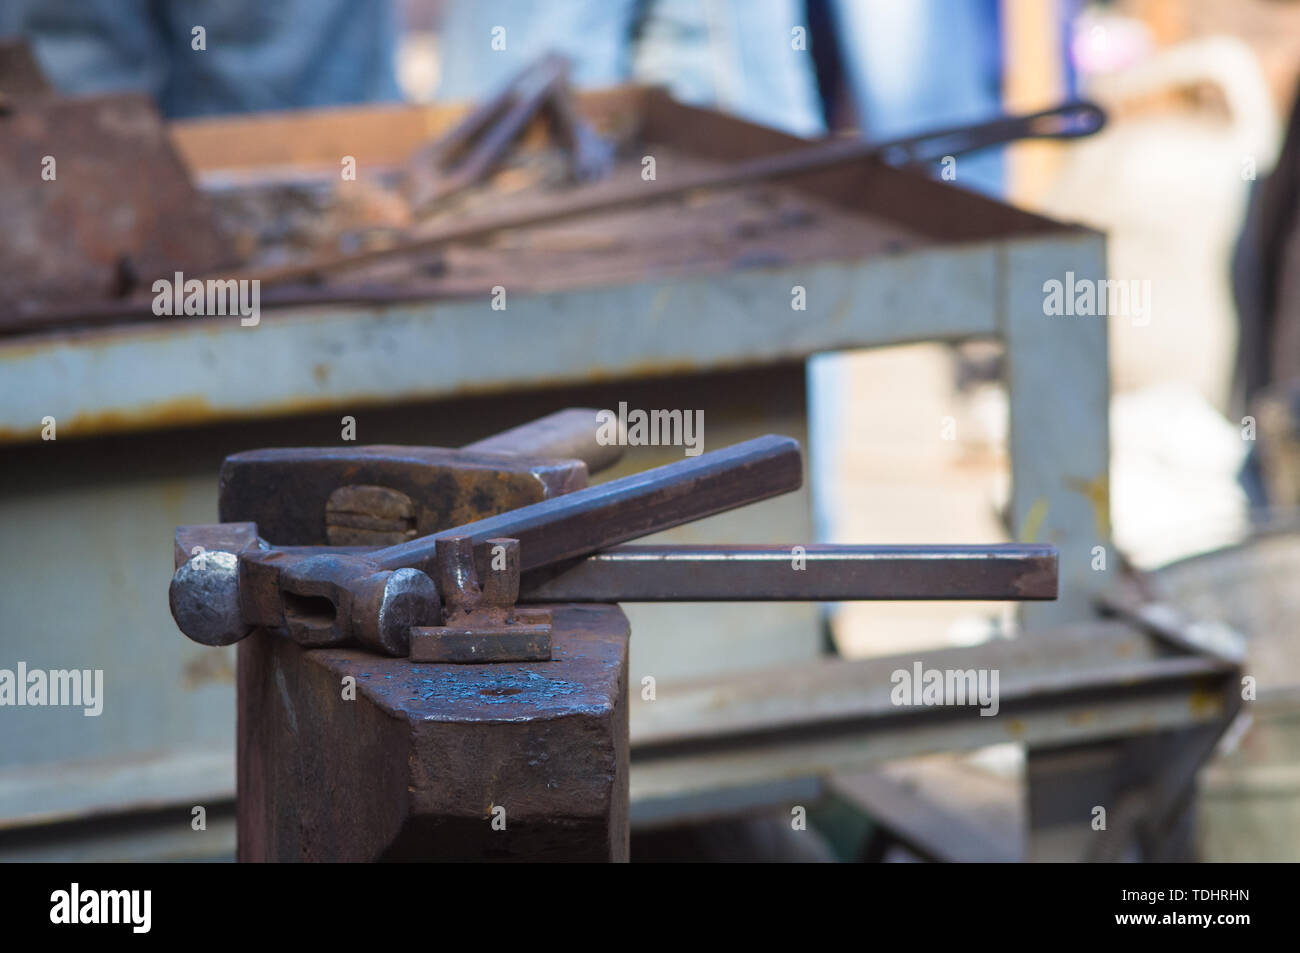 blacksmith tools and fixtures for hand forged metal, close-up Stock